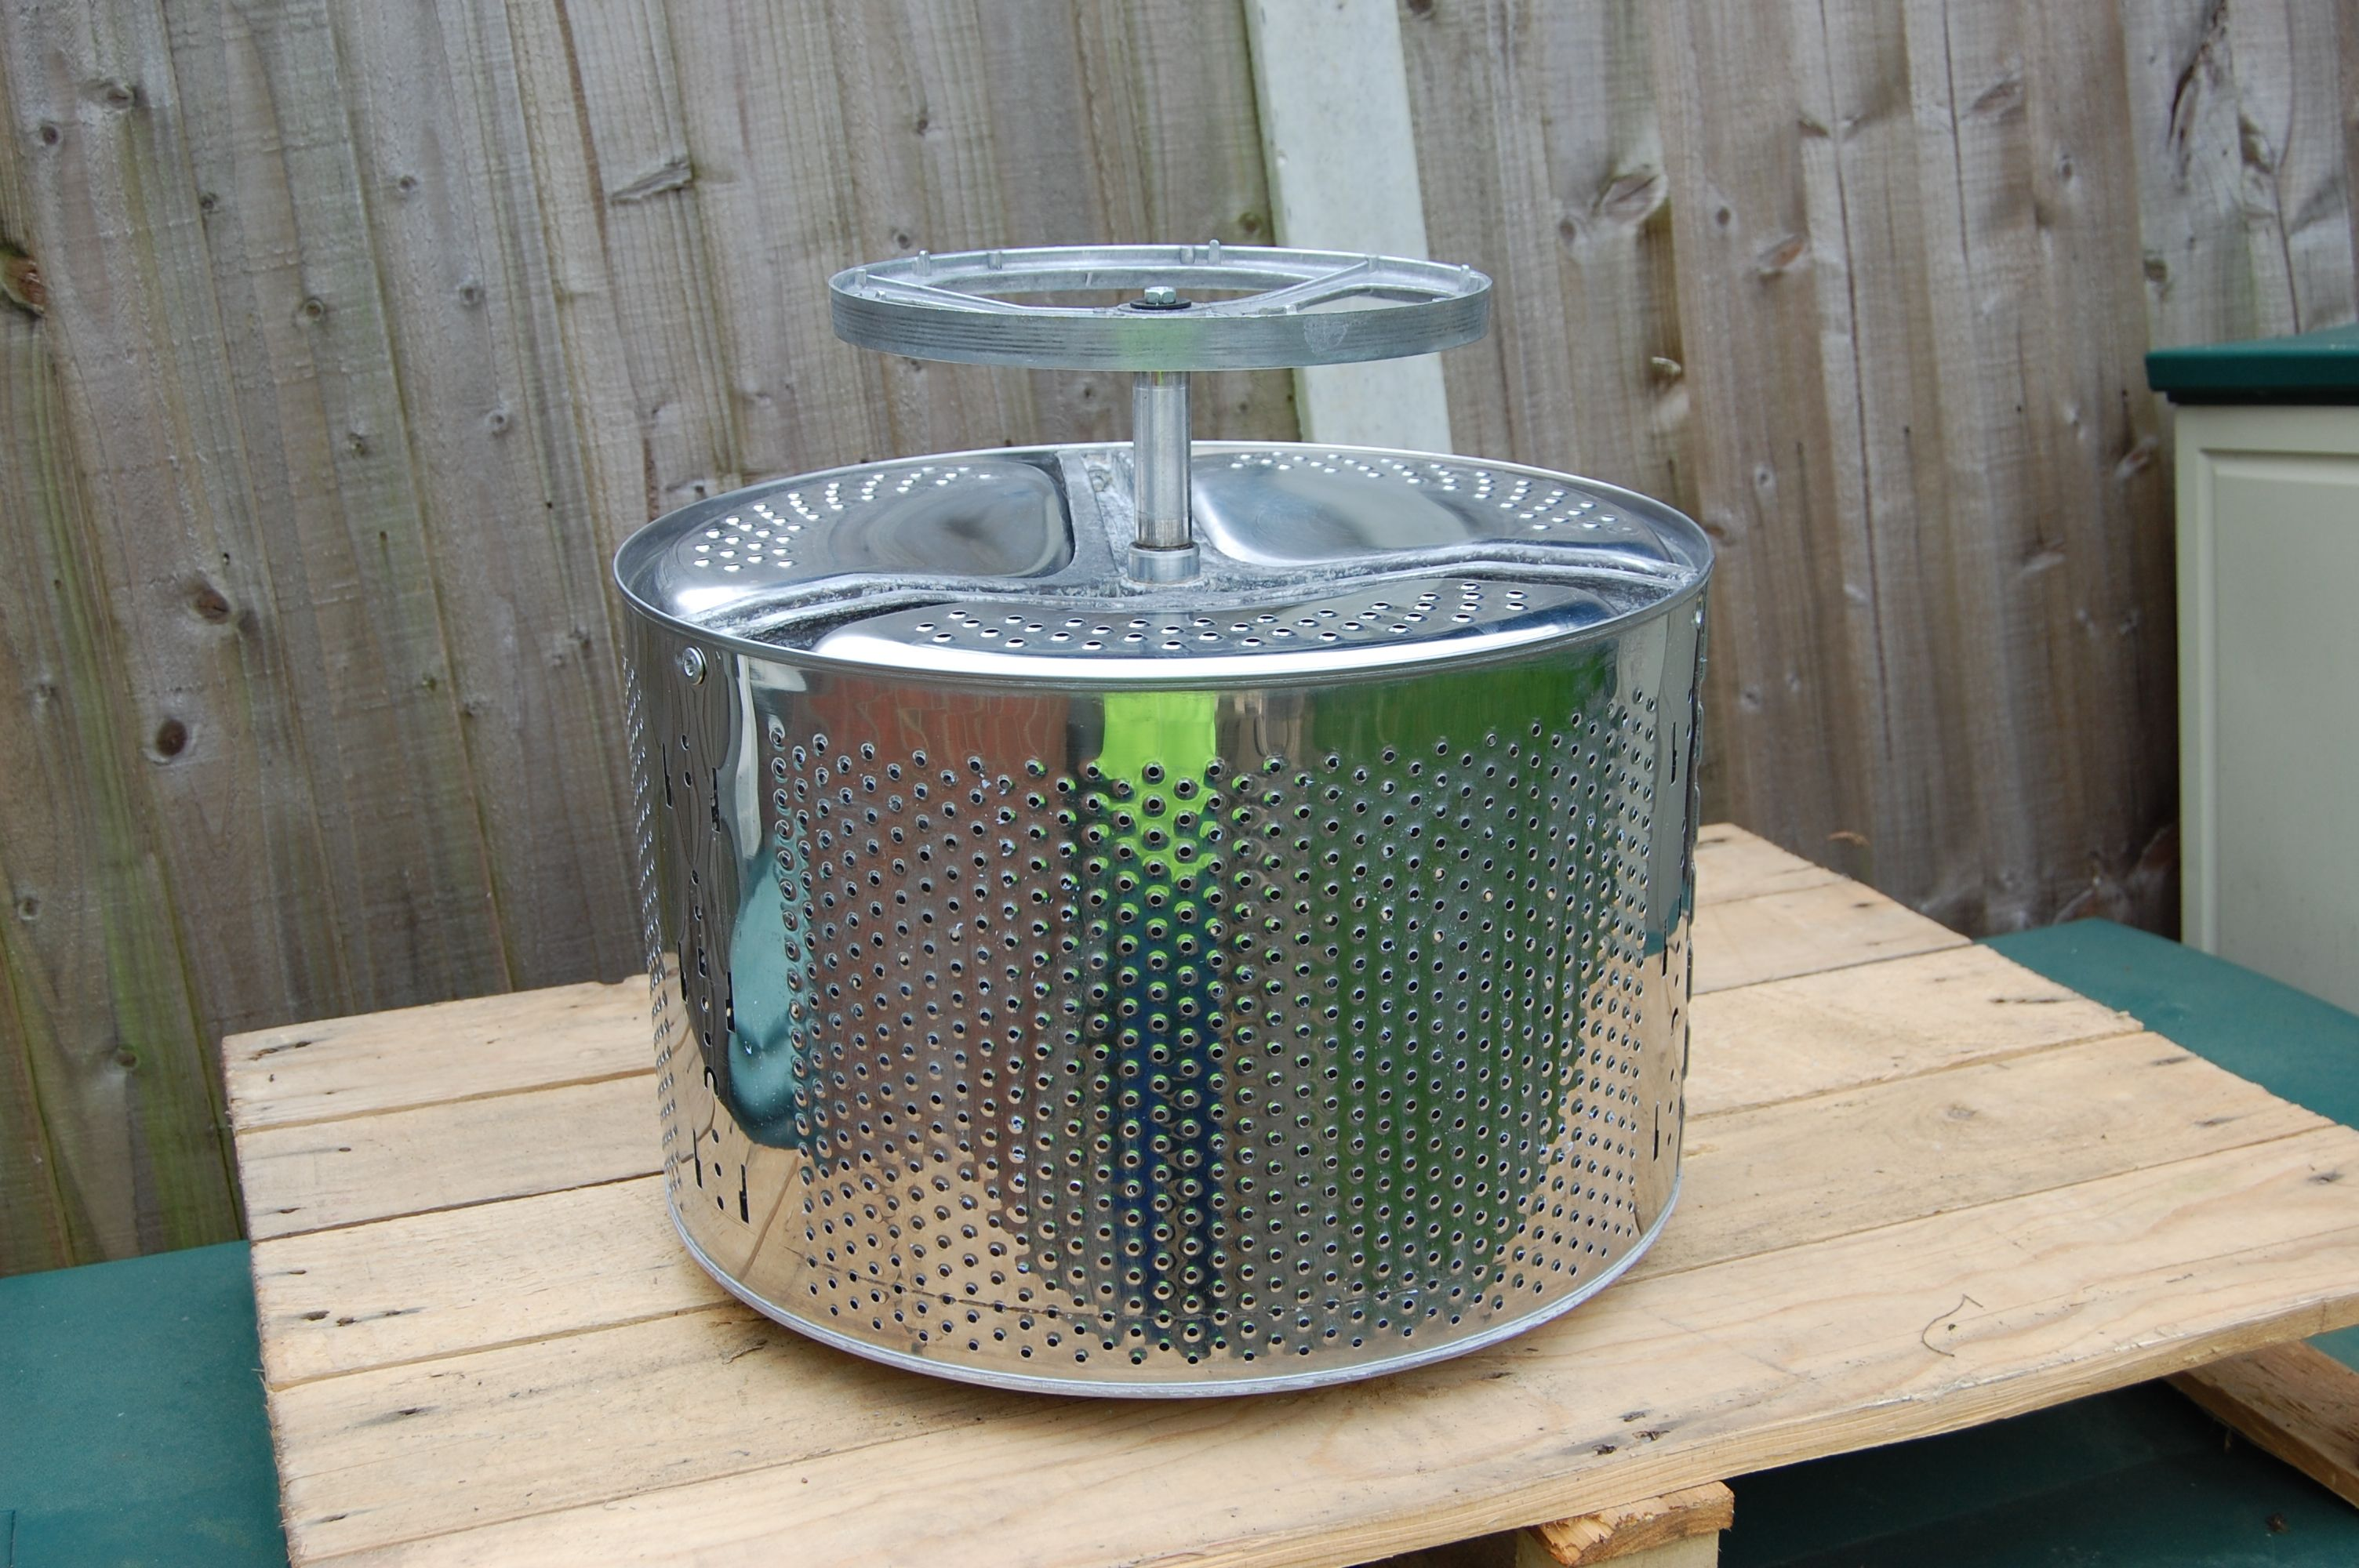 fire pit 1 from a used washing machine drum all stainless steel